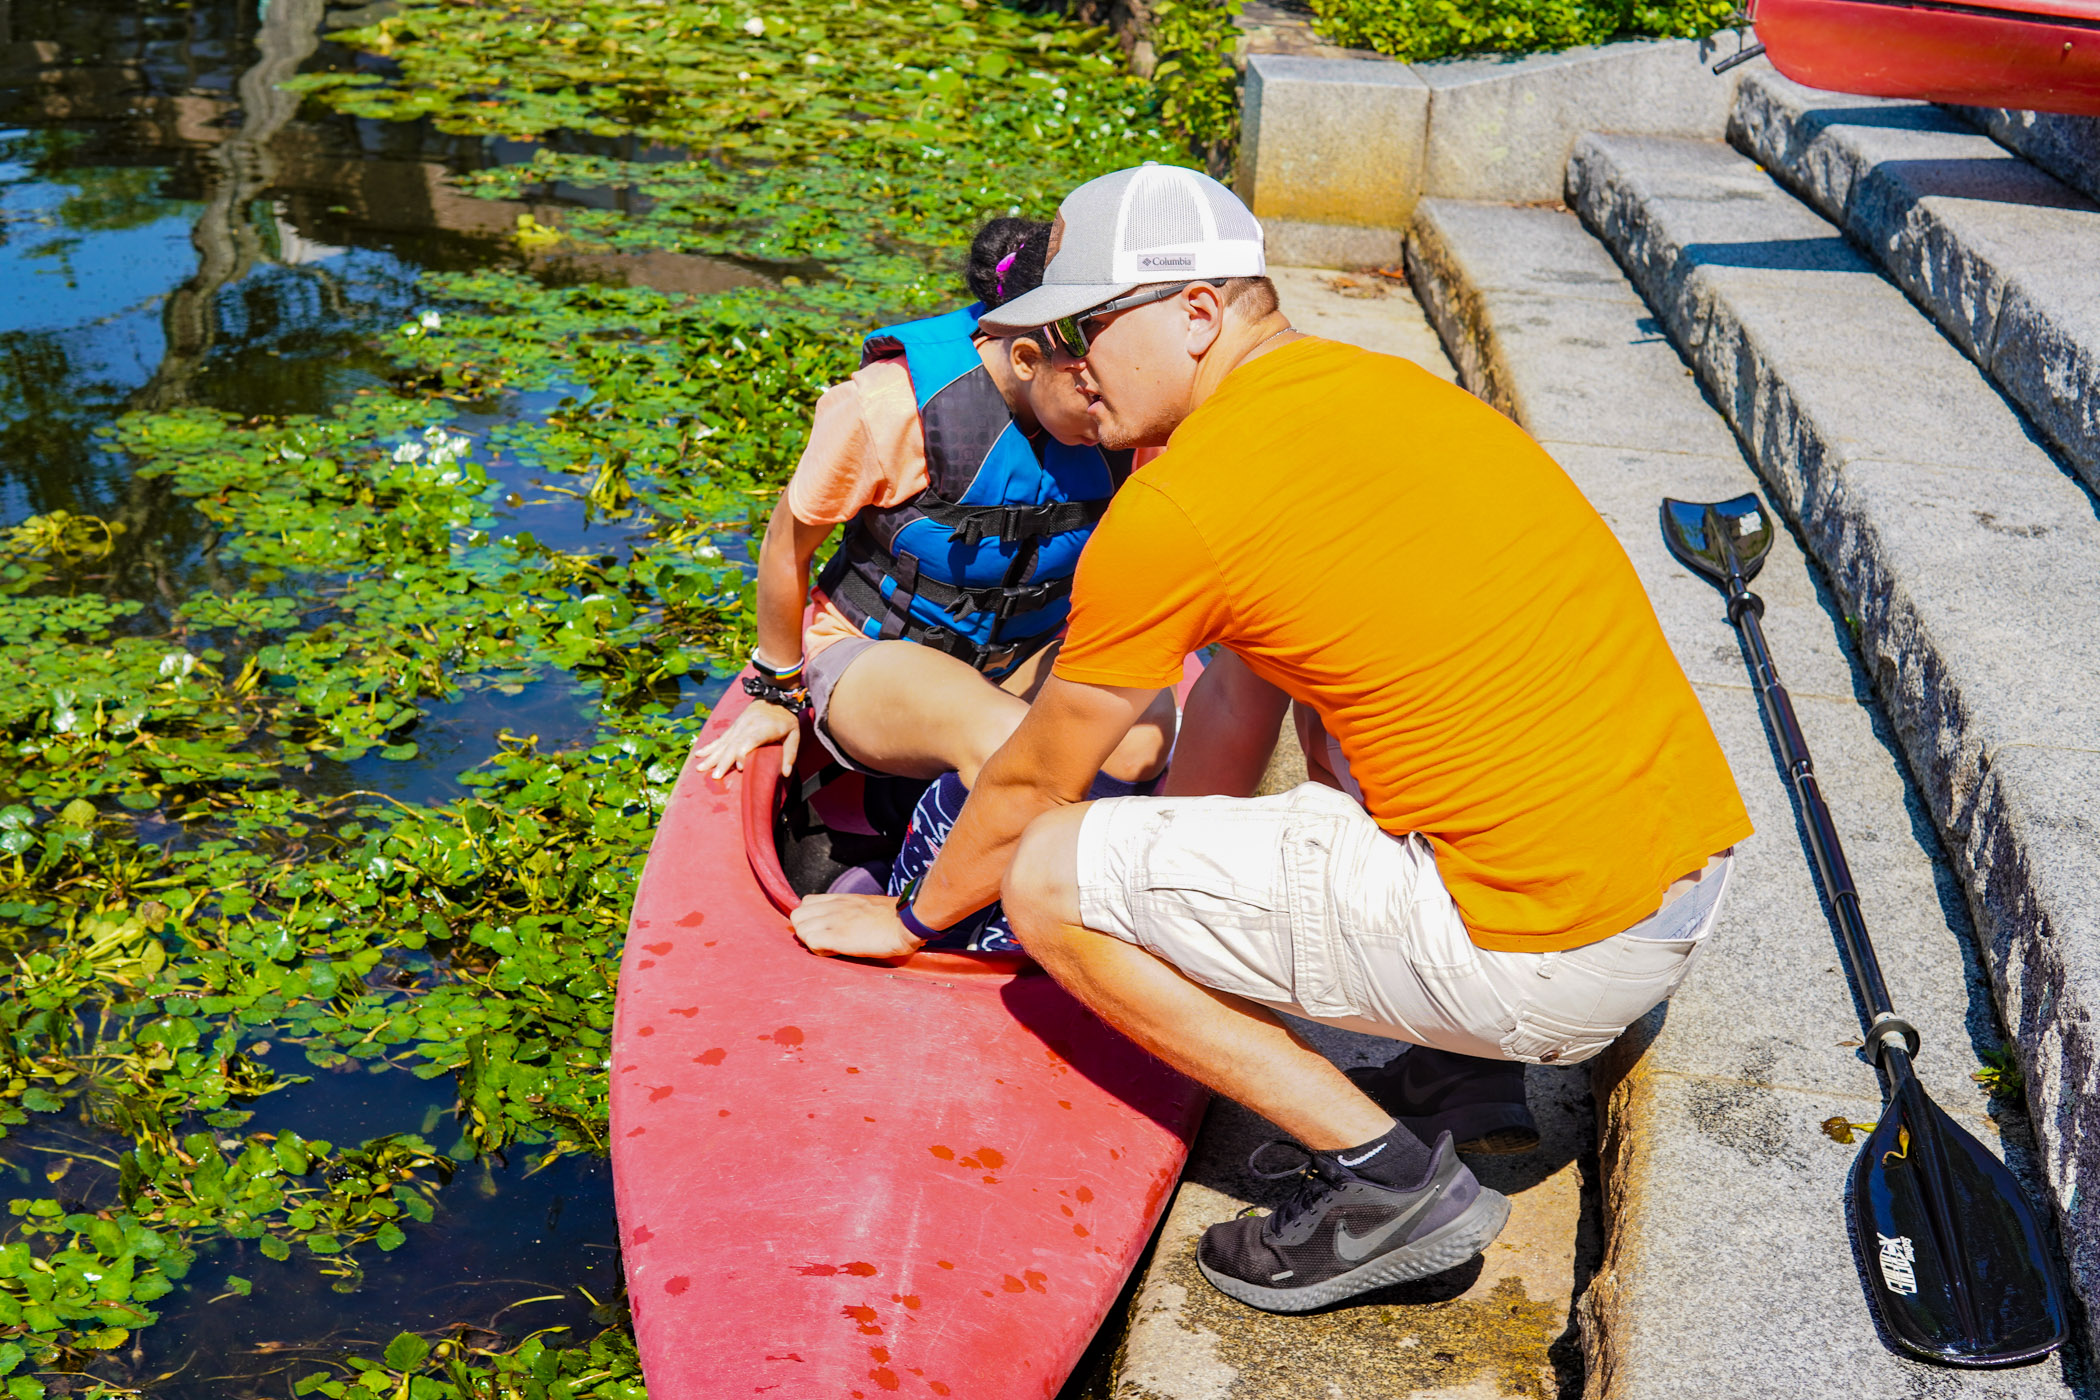 Teacher helps student in and out of the kayak for proper saftey